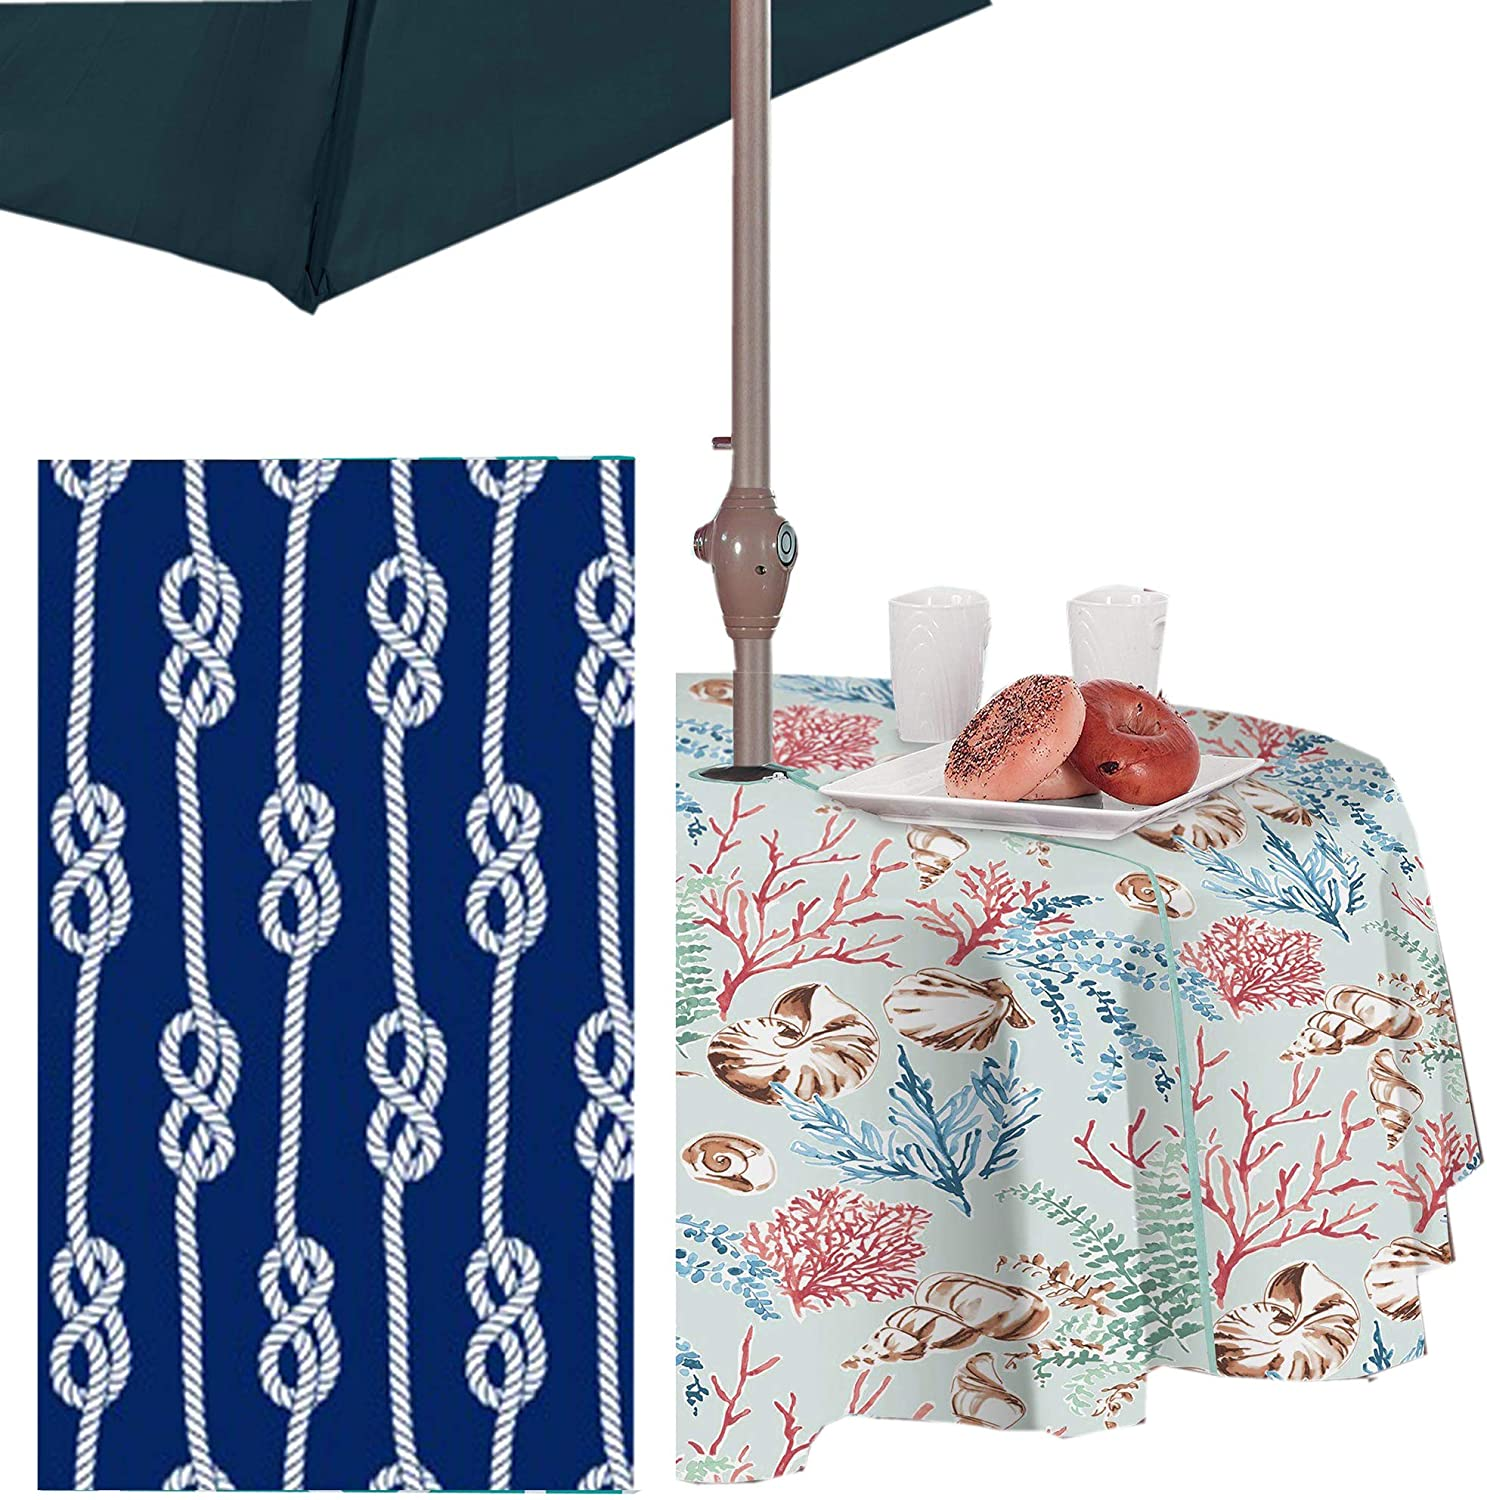 Coastal Rope Striped Indoor//Outdoor Vinyl Picnic BBQ and Dining Tablecloth Navy 52 x 52 Square Newbridge Nautical Rope Stripe Vinyl Flannel Backed Tablecloth